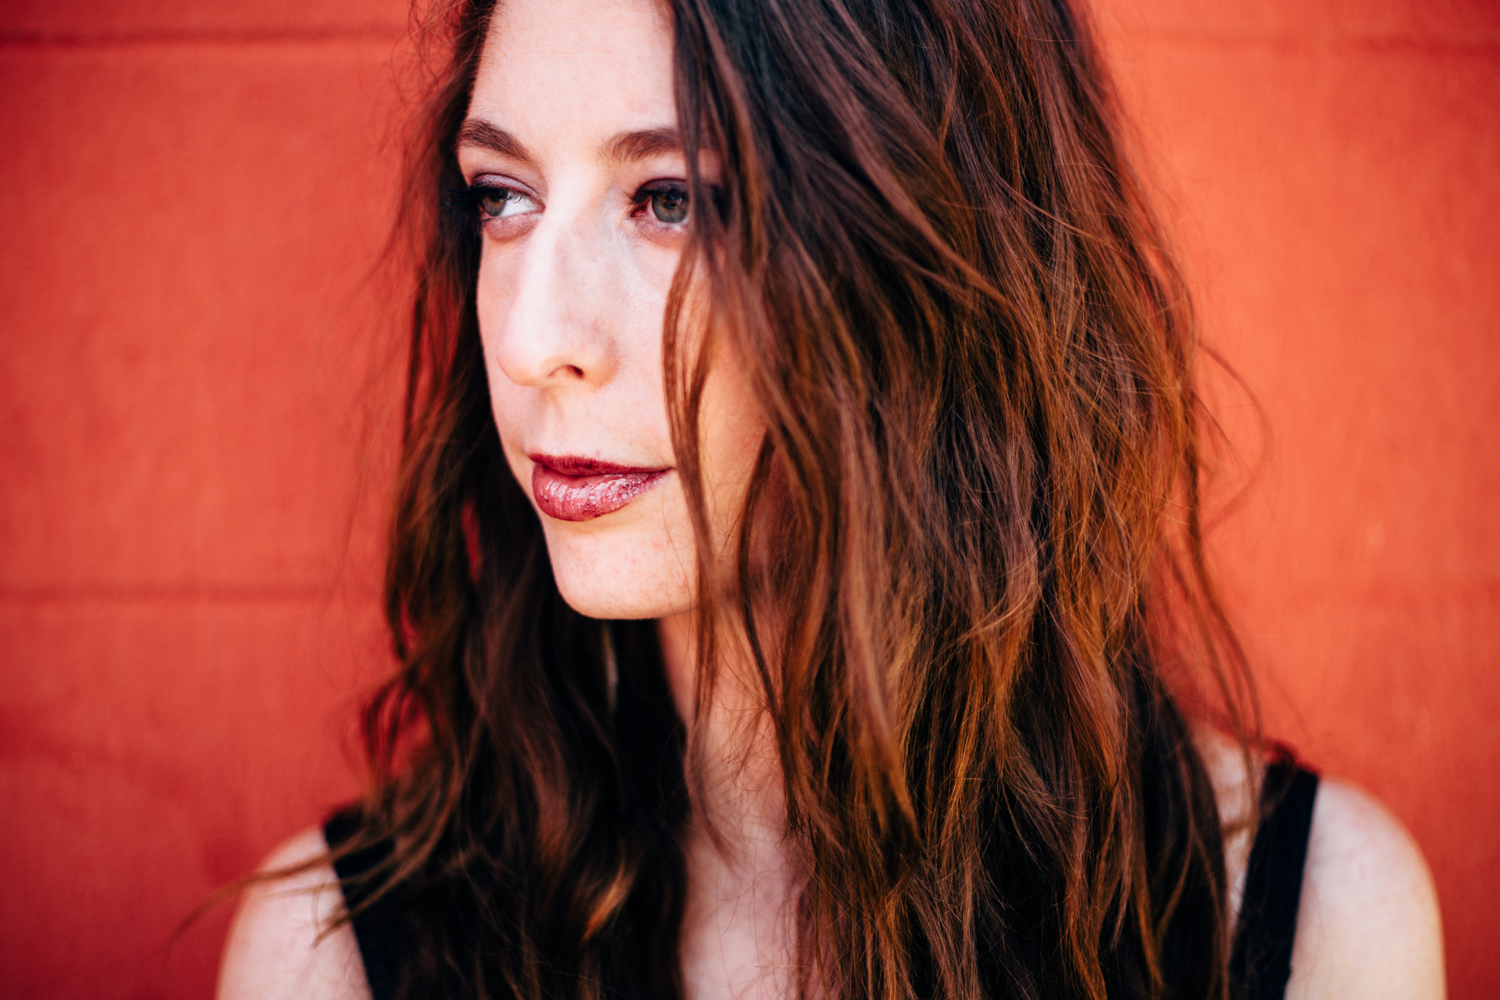 3x3: Ali Holder on Gap Skinnies, Hans Zimmer, and the Sensuality of Summer